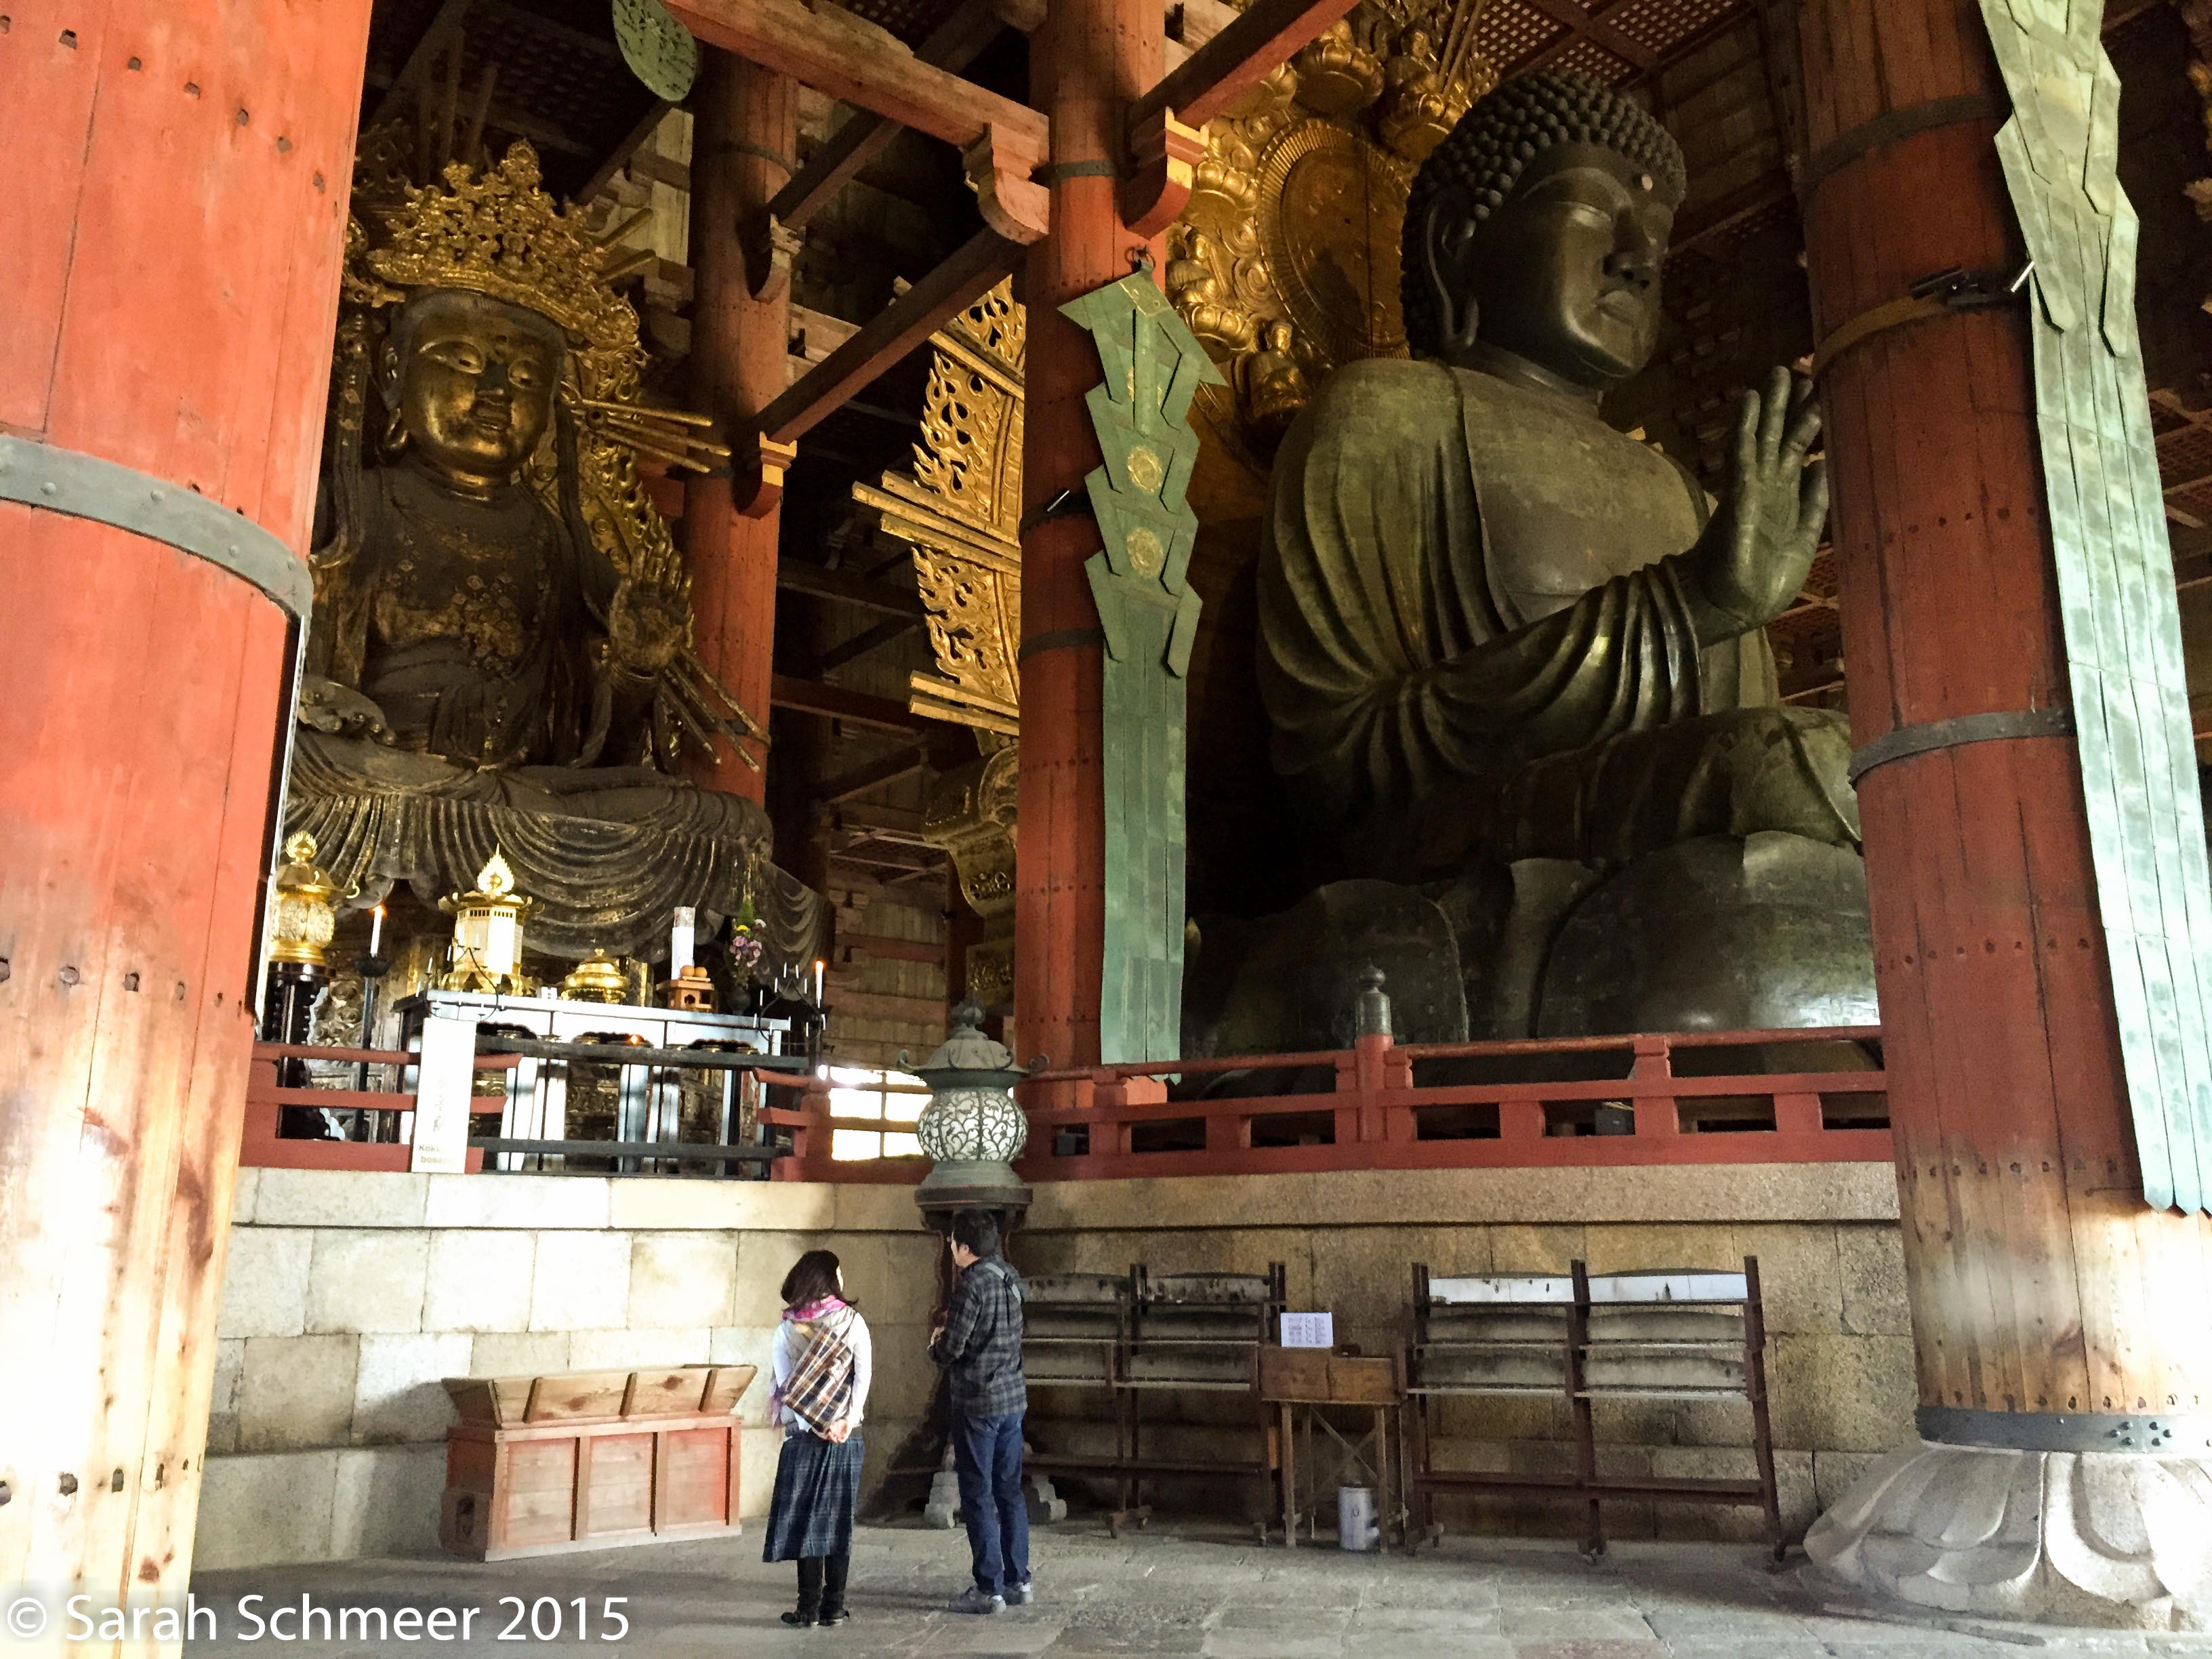 The Daibutsu in Nara, Japan, with some tiny mortals for scale.